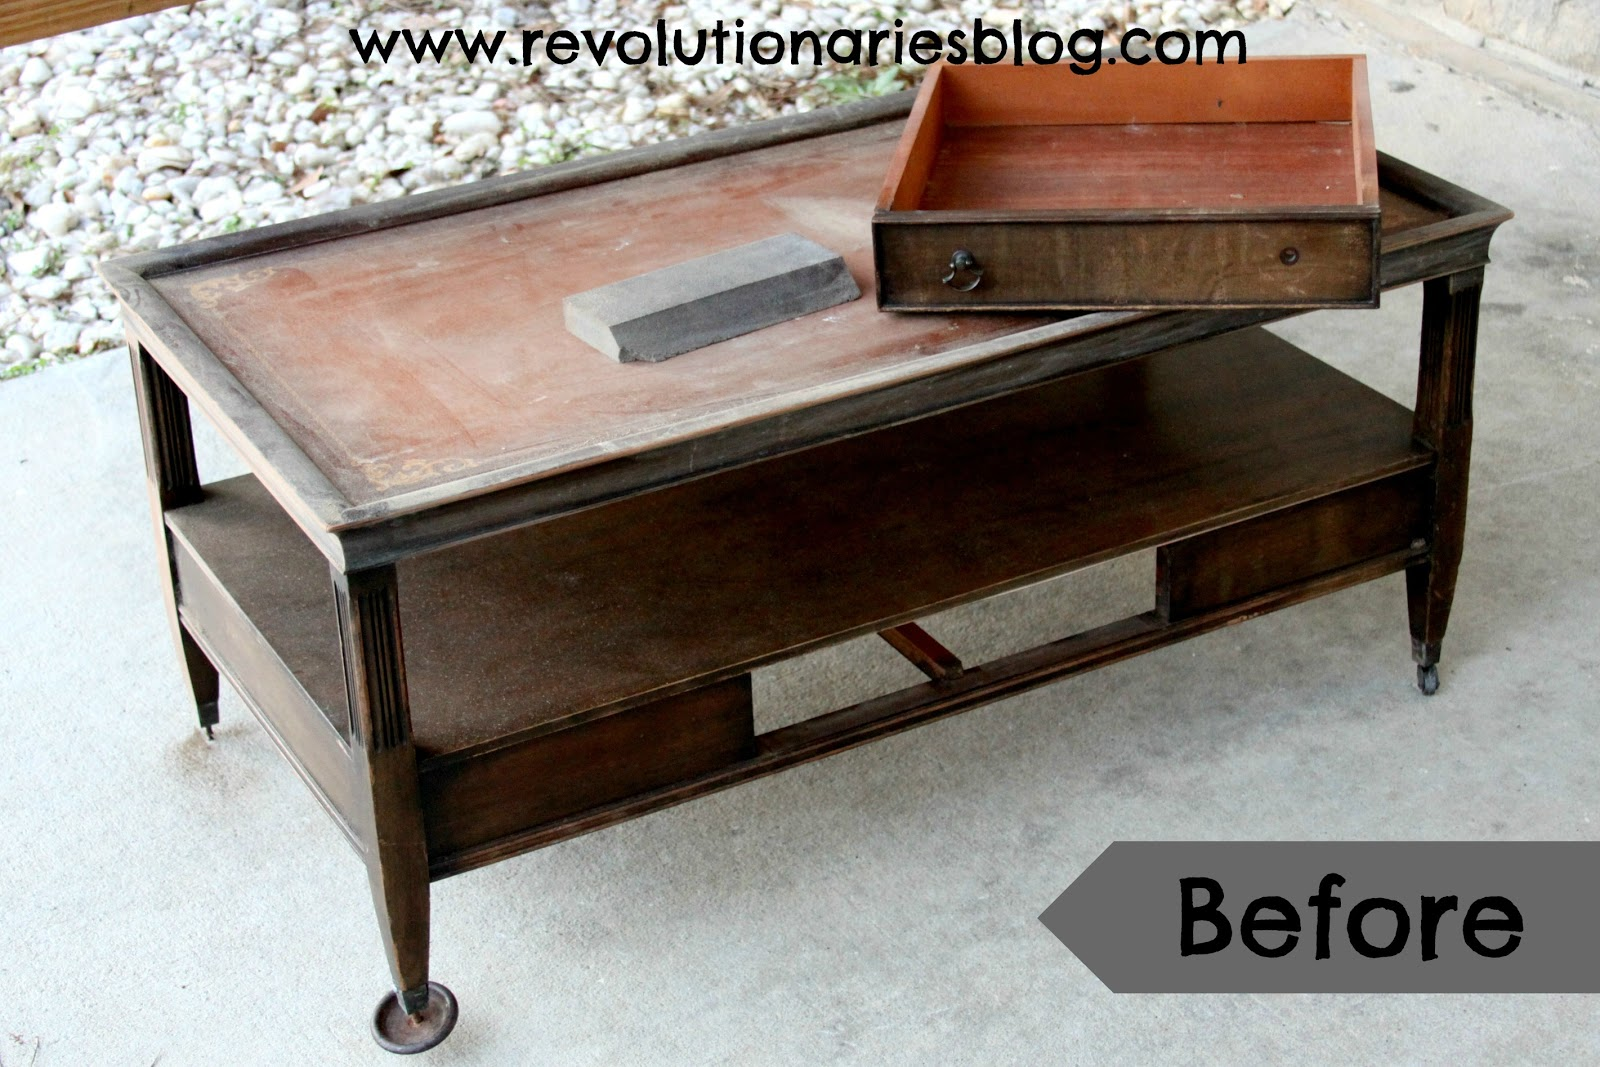 Revolutionaries Shabby Chic Coffee Table